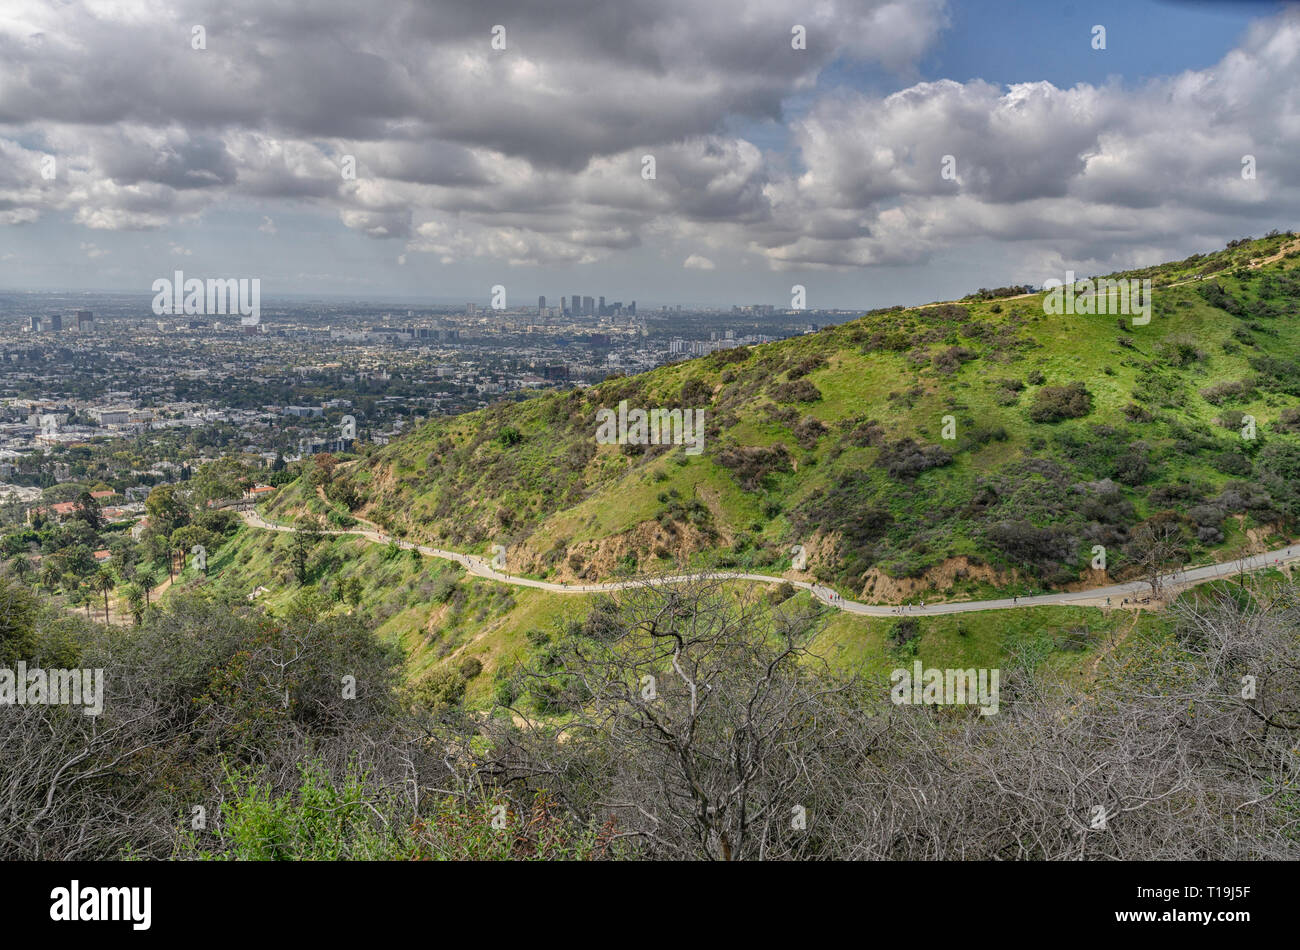 Hiking trails in Runyon Canyon, Los Angeles, CA. - Stock Image